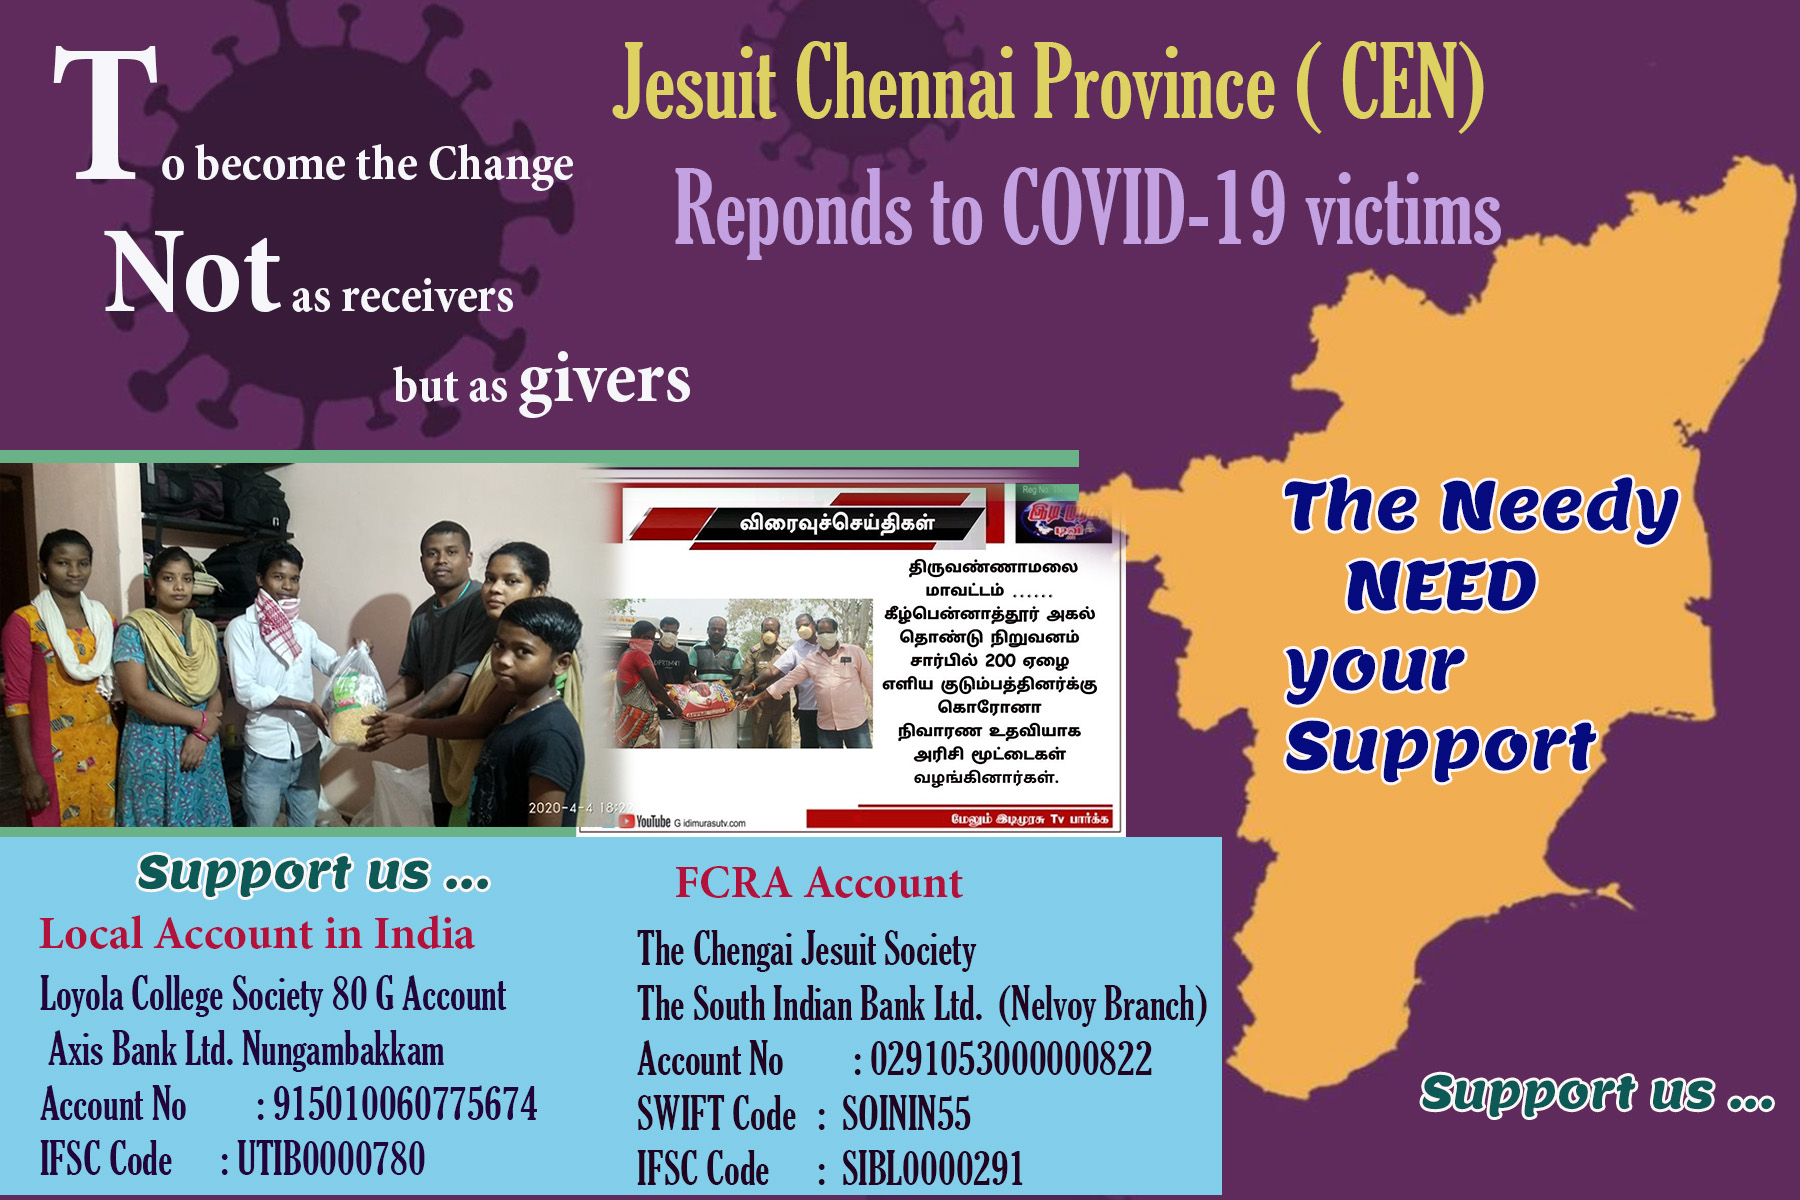 Jesuit Chennai Province (CEN) Responds to COVID-19 victims